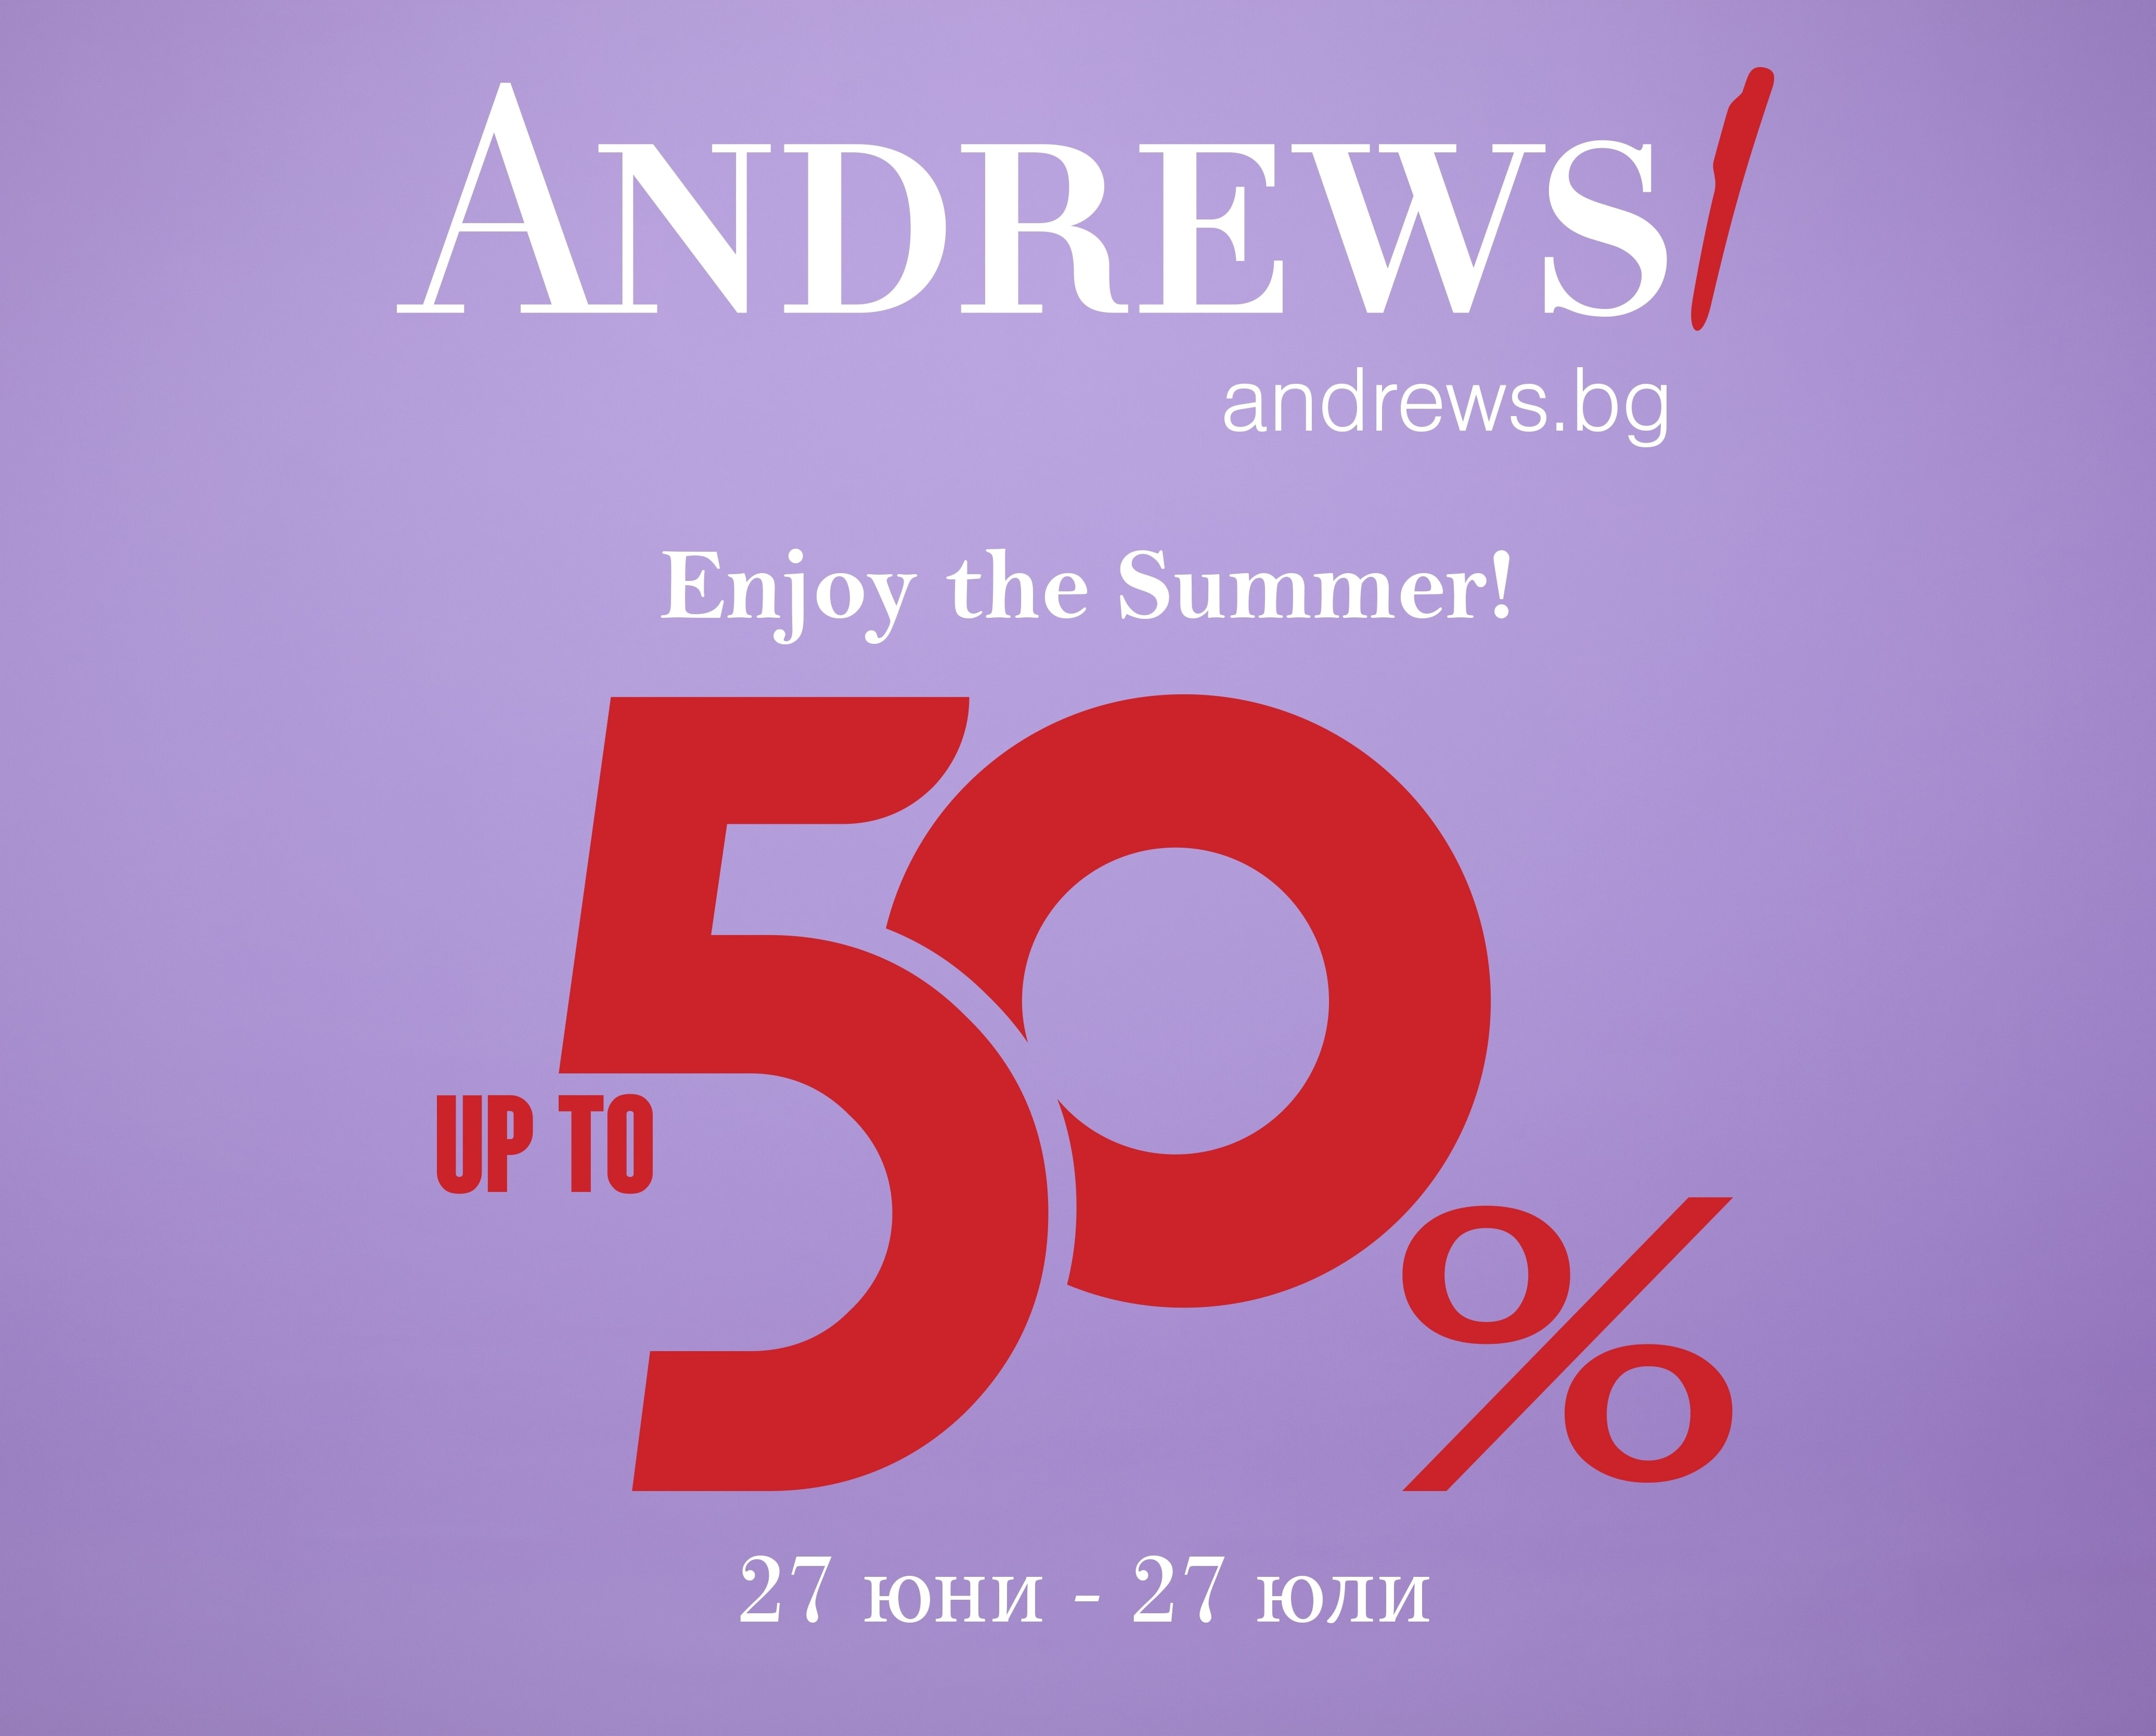 Enjoy the Summer with Andrews/